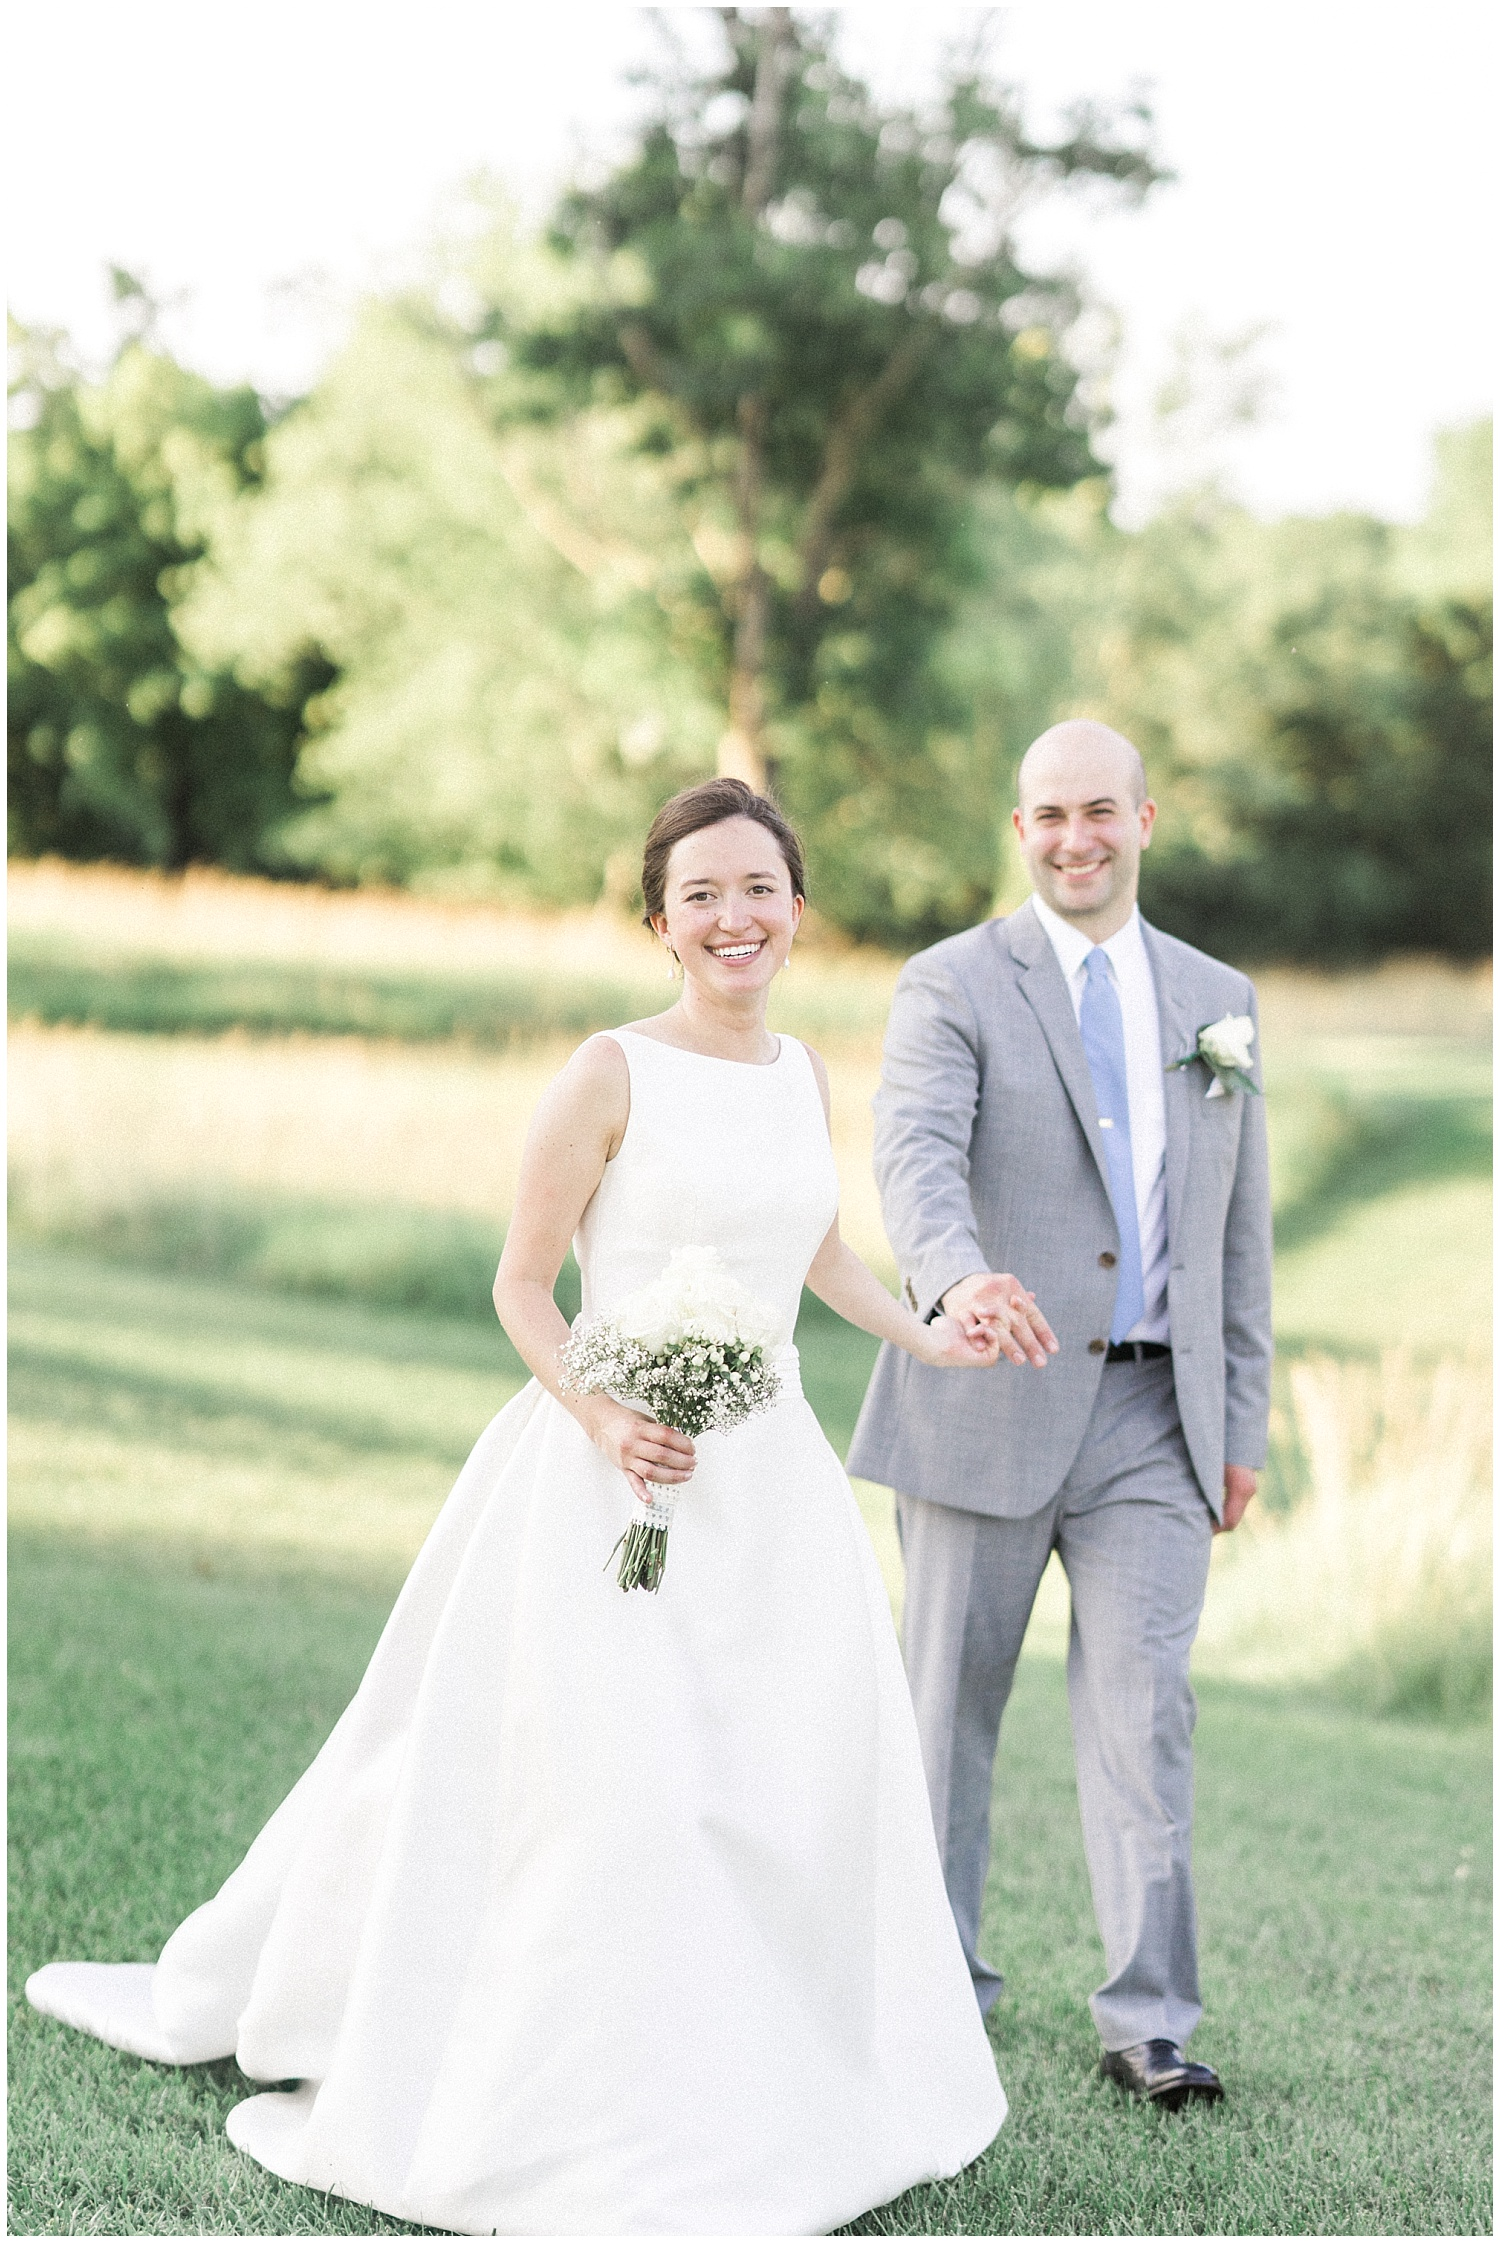 Such Was The Case With This Stunning Wedding I Photographed At Bretton Woods